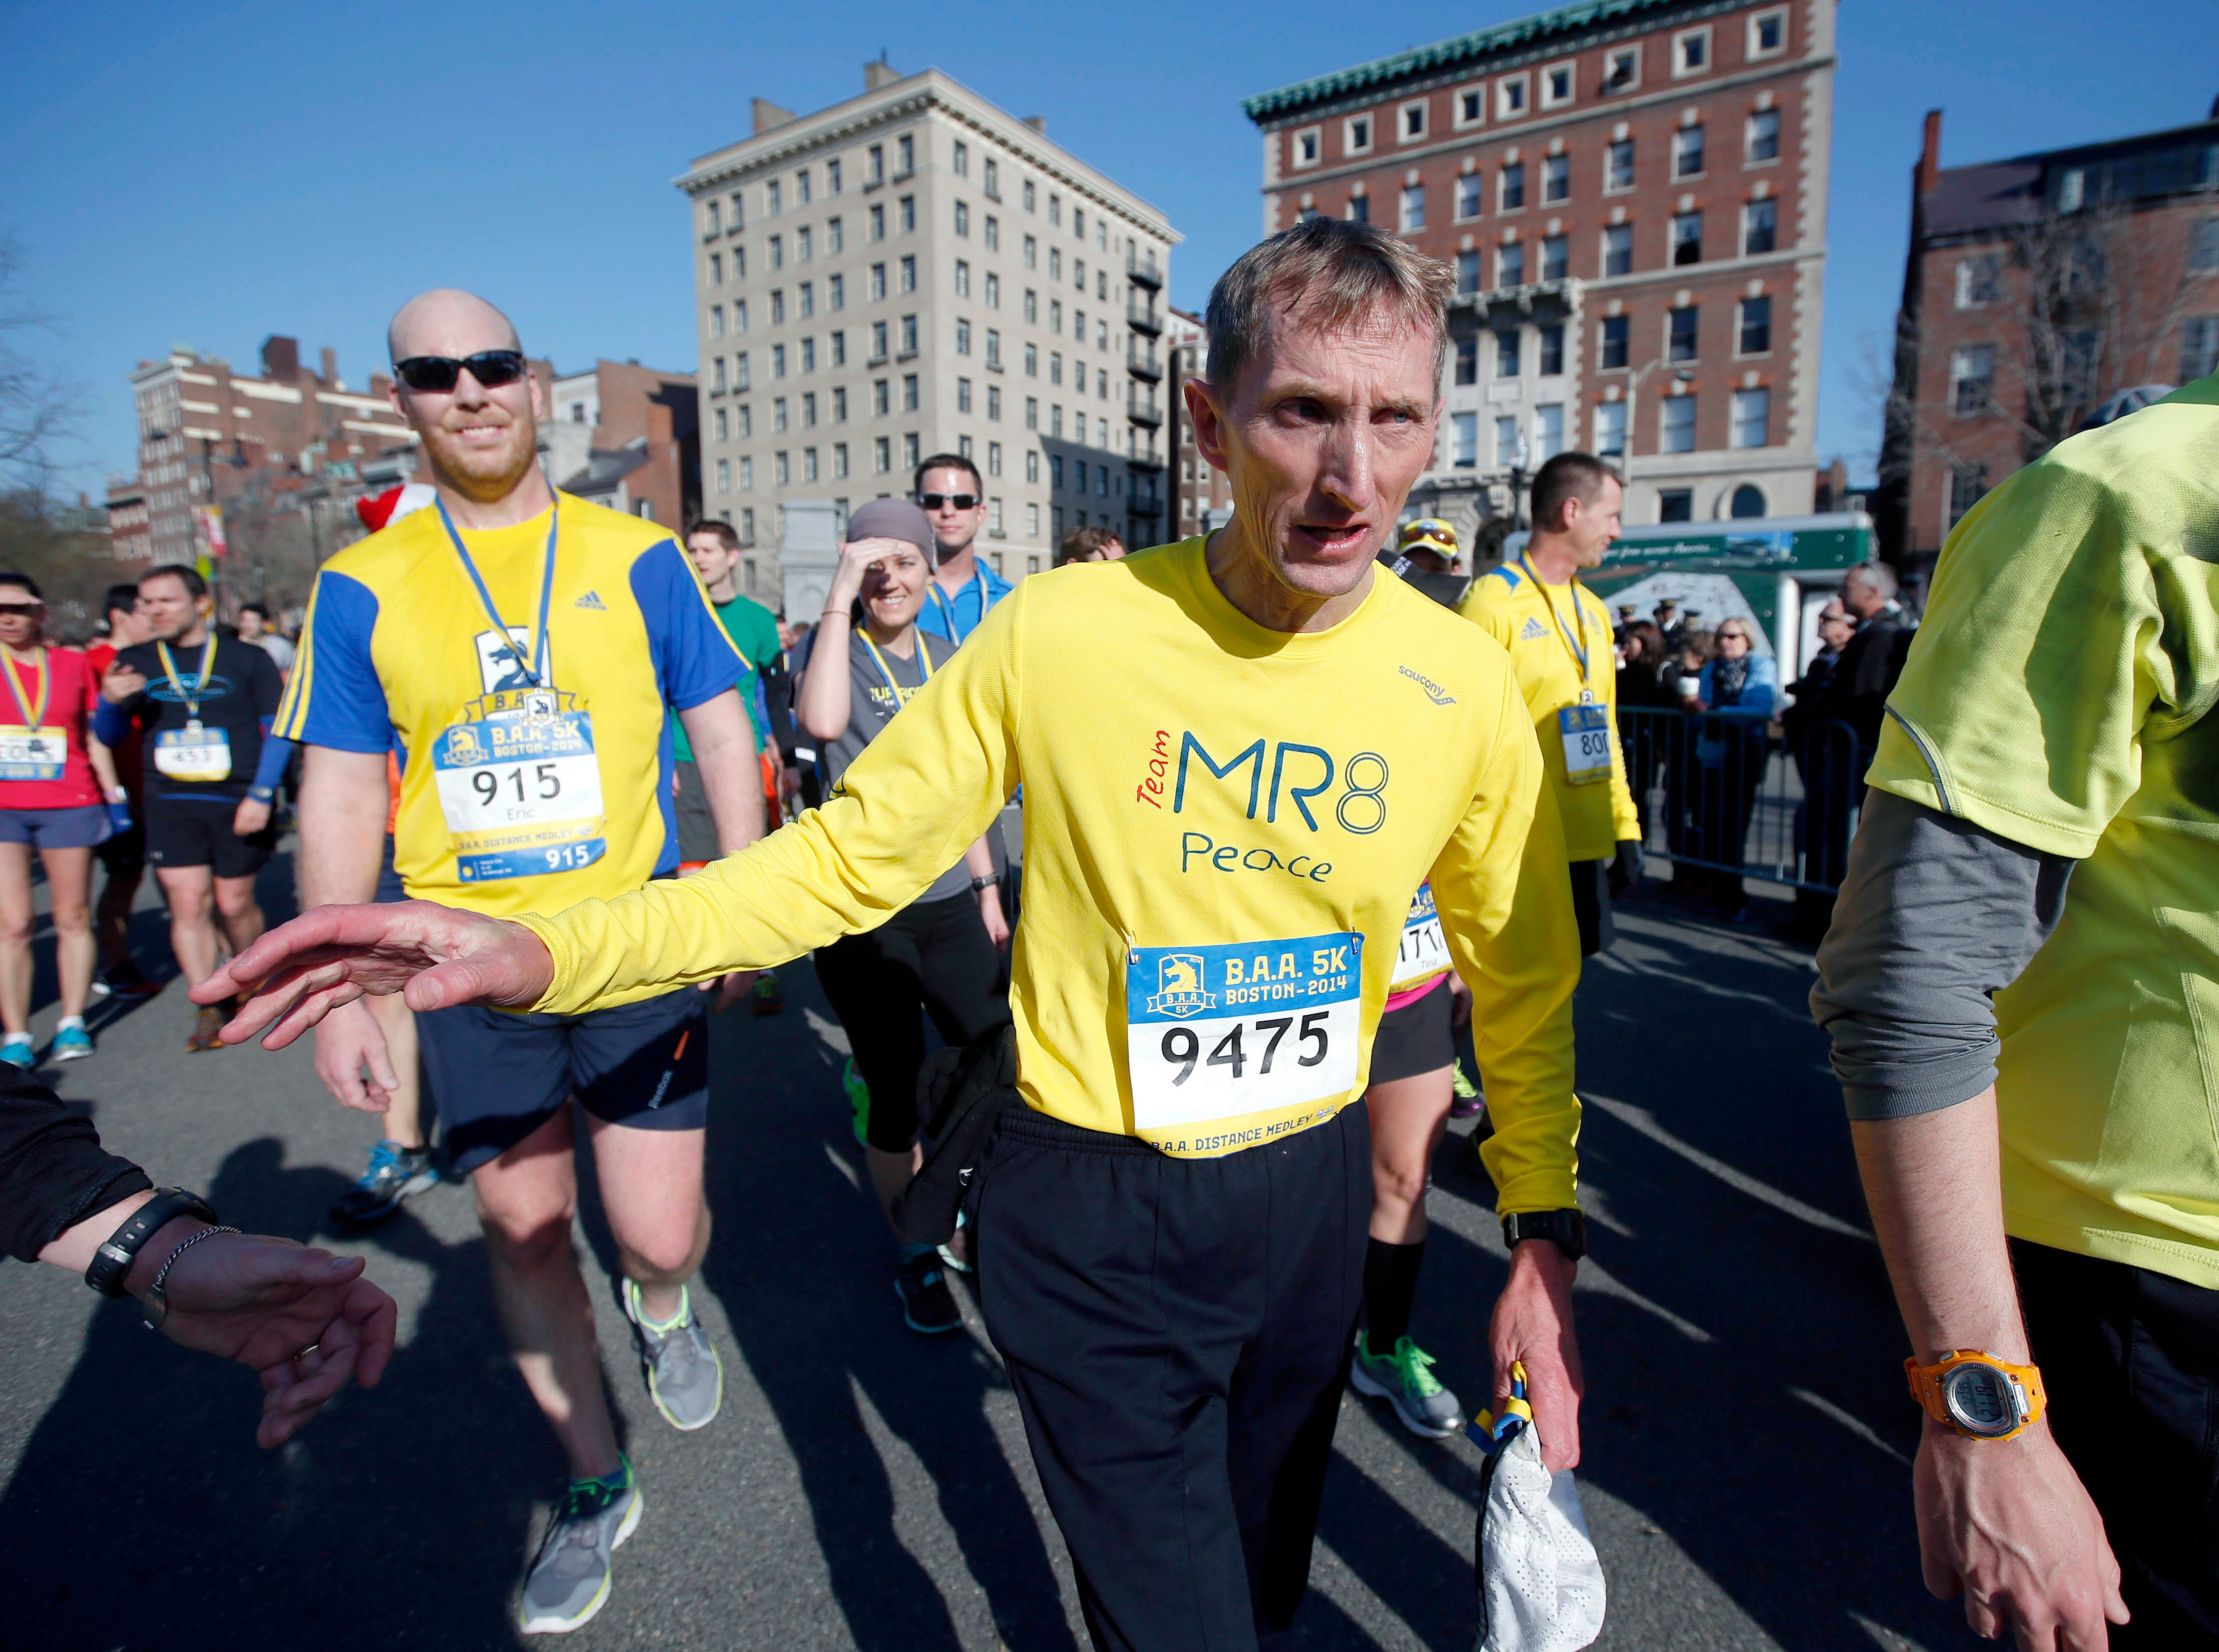 FILE - In this Saturday April 19, 2014 file photo, Boston Police Commissioner William Evans leaves the course after running in the 5-kilometer race in Boston. The recent bombing in Brussels has heightened security concerns for this year's Boston Marathon. Evans, who is an accomplished athlete, said he will sit out the race because he says he's needed amid increased security following the attacks in Brussels. (AP Photo/Elise Amendola, File)